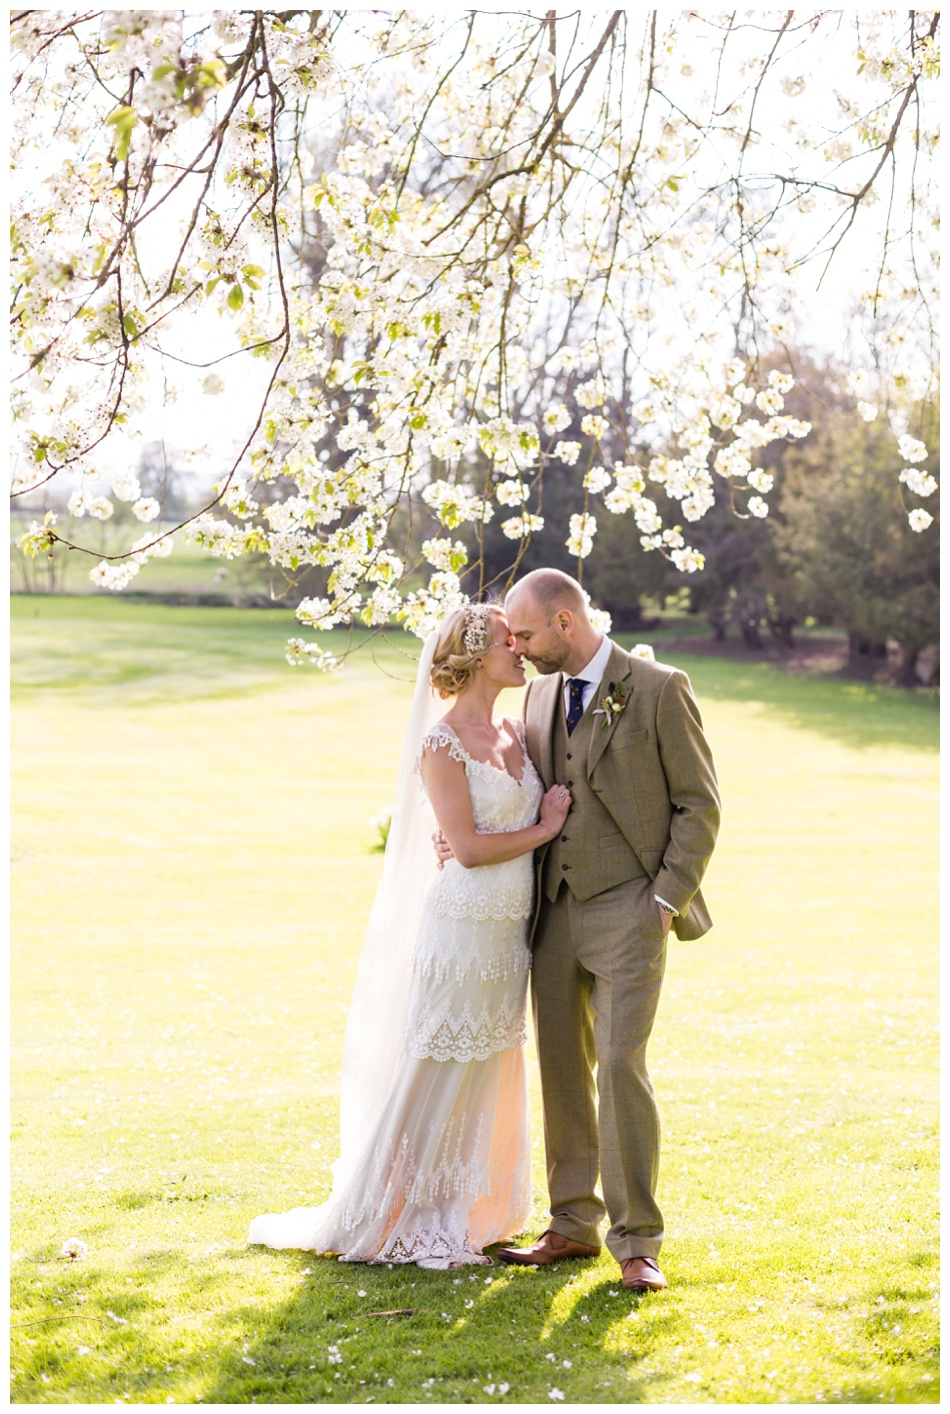 Wedding Photographer at Ettington Park